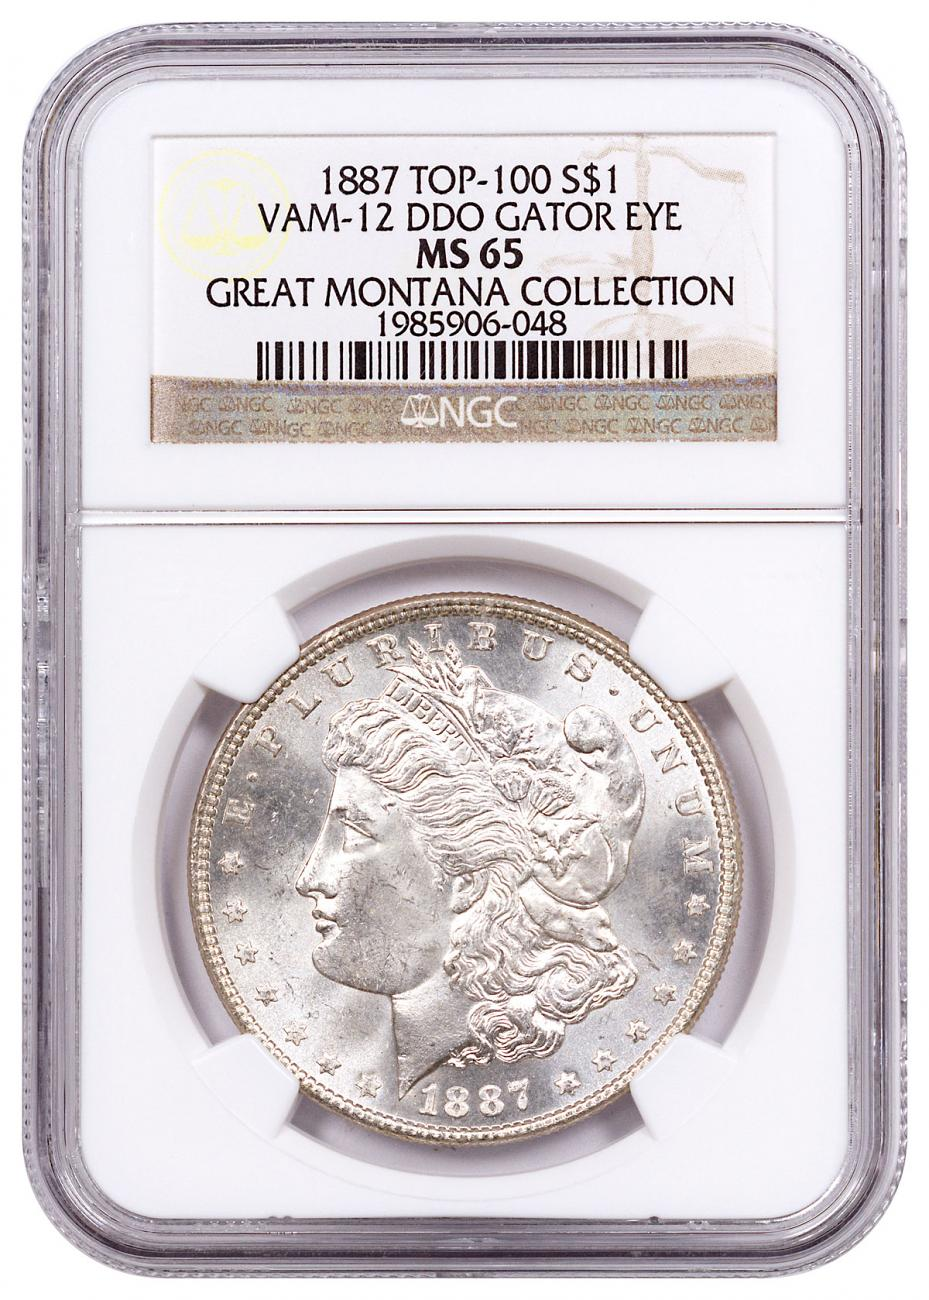 1887 Morgan Silver Dollar From the Great Montana Collection NGC MS65 VAM-12 DDO Gator Eye